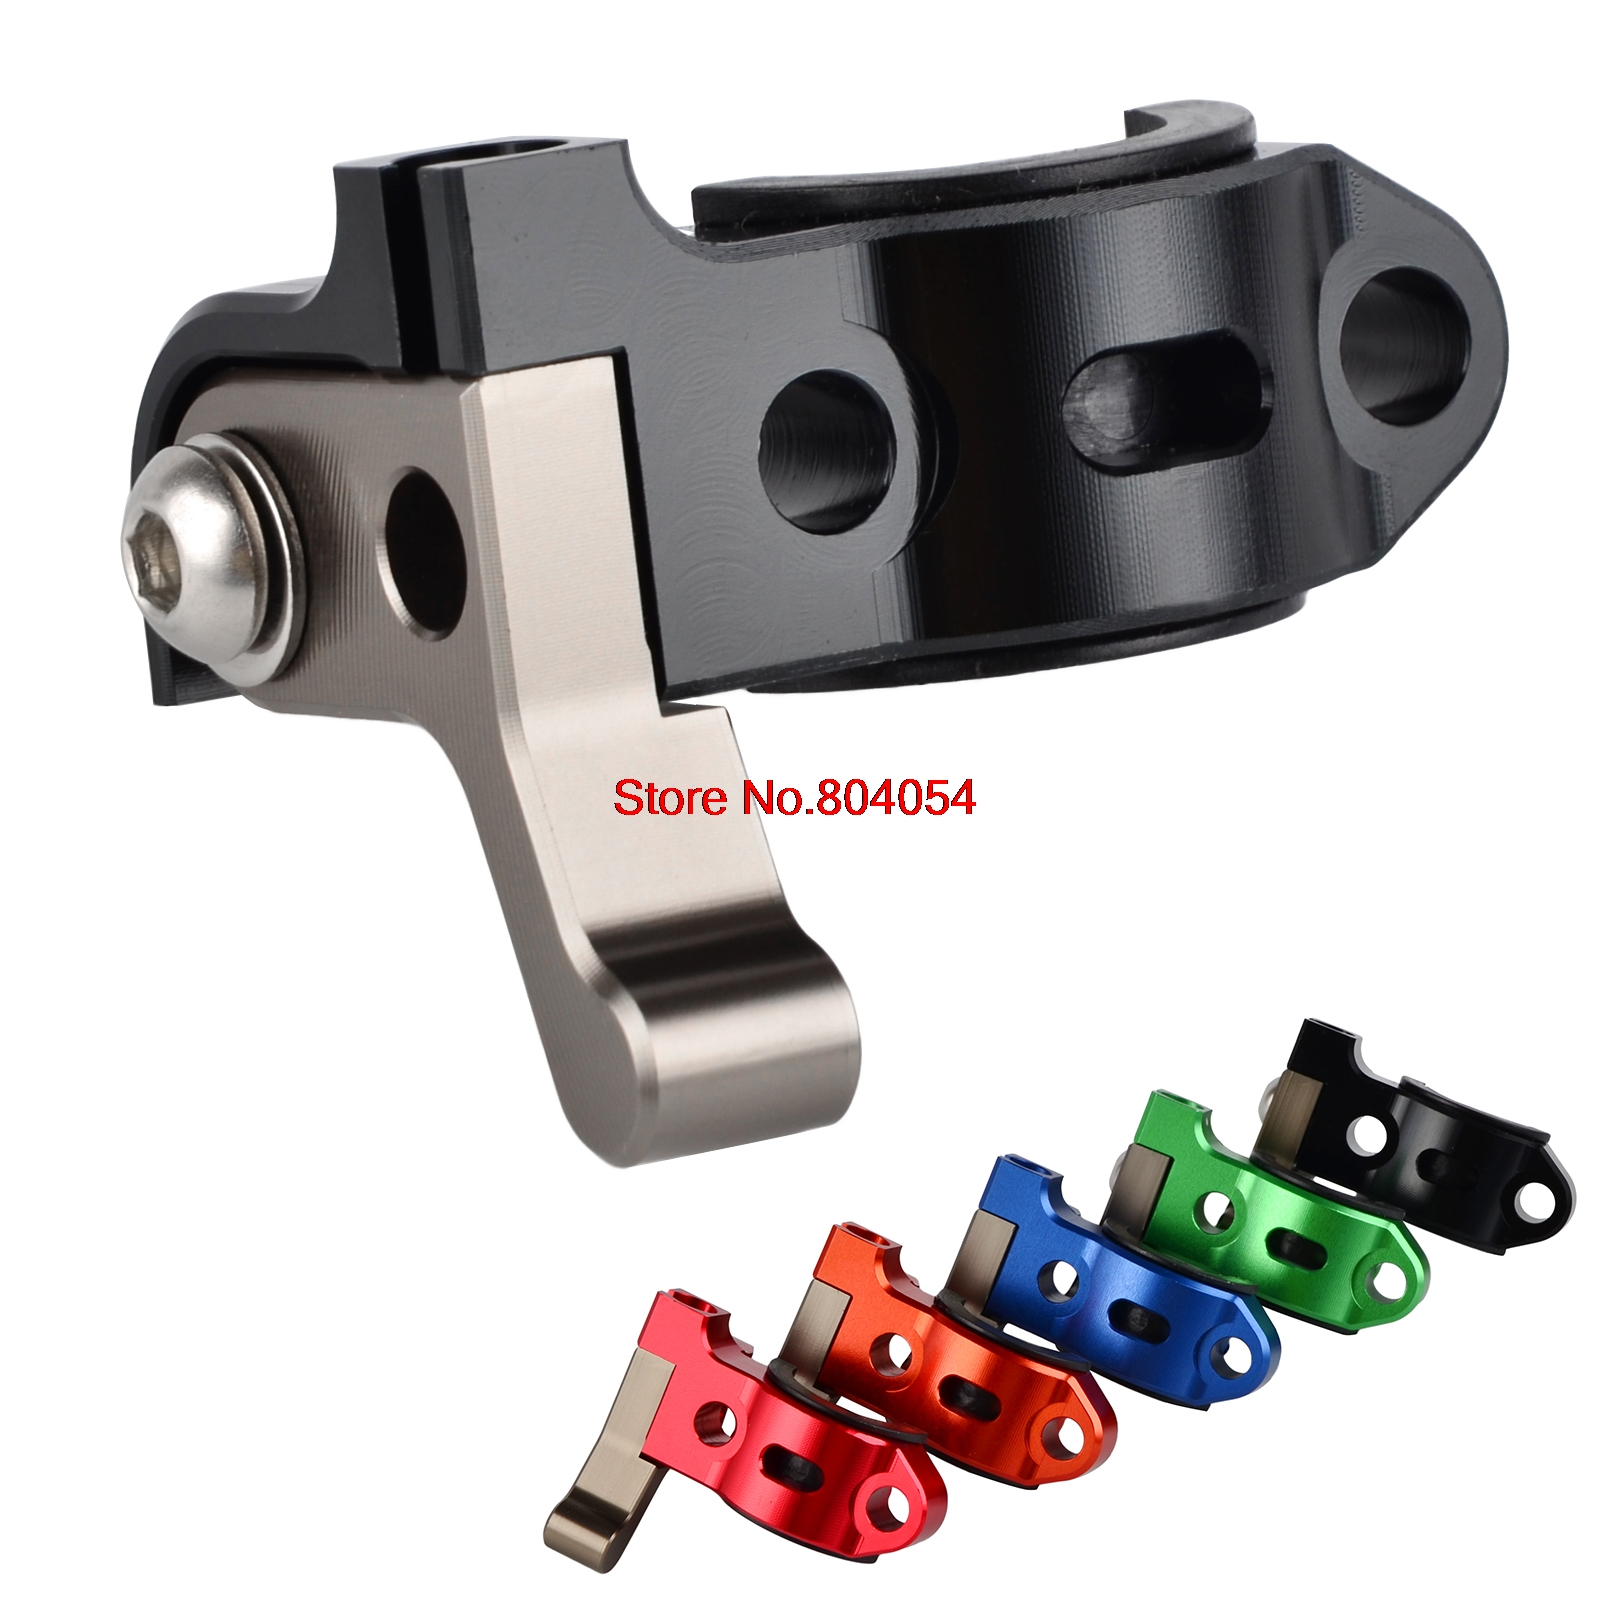 Rotating Bar Clamp Hot Start Lever For Kawasaki YZ85 YZ125 YZ250 YZ250F YZ426F YZ450F YZ 85 125 250 250F 426F 450F 450 hot start